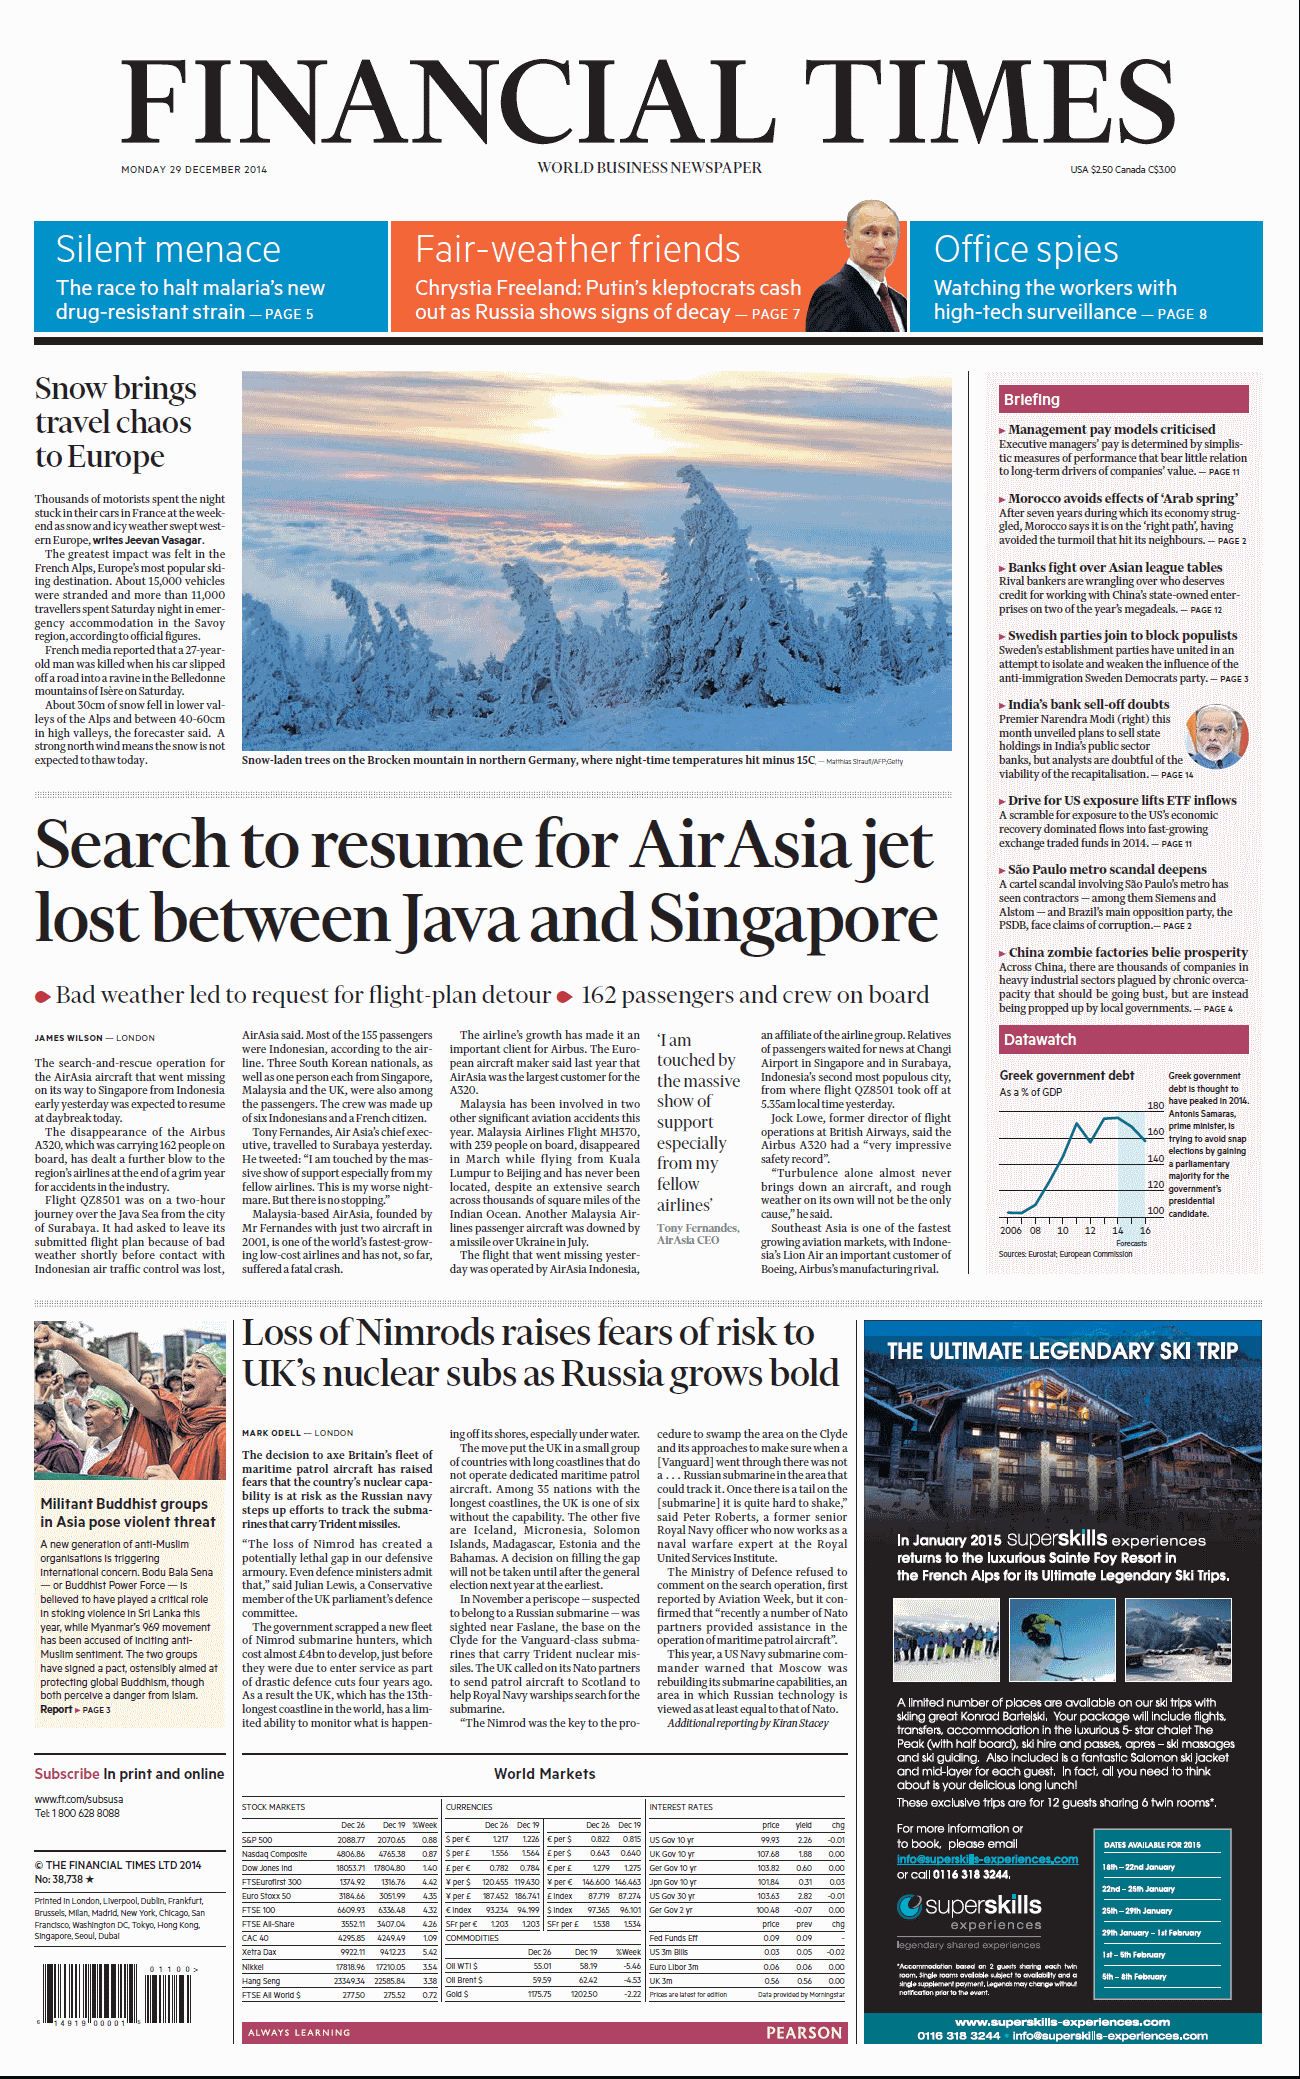 Financial Times  December 29, 2014 free download